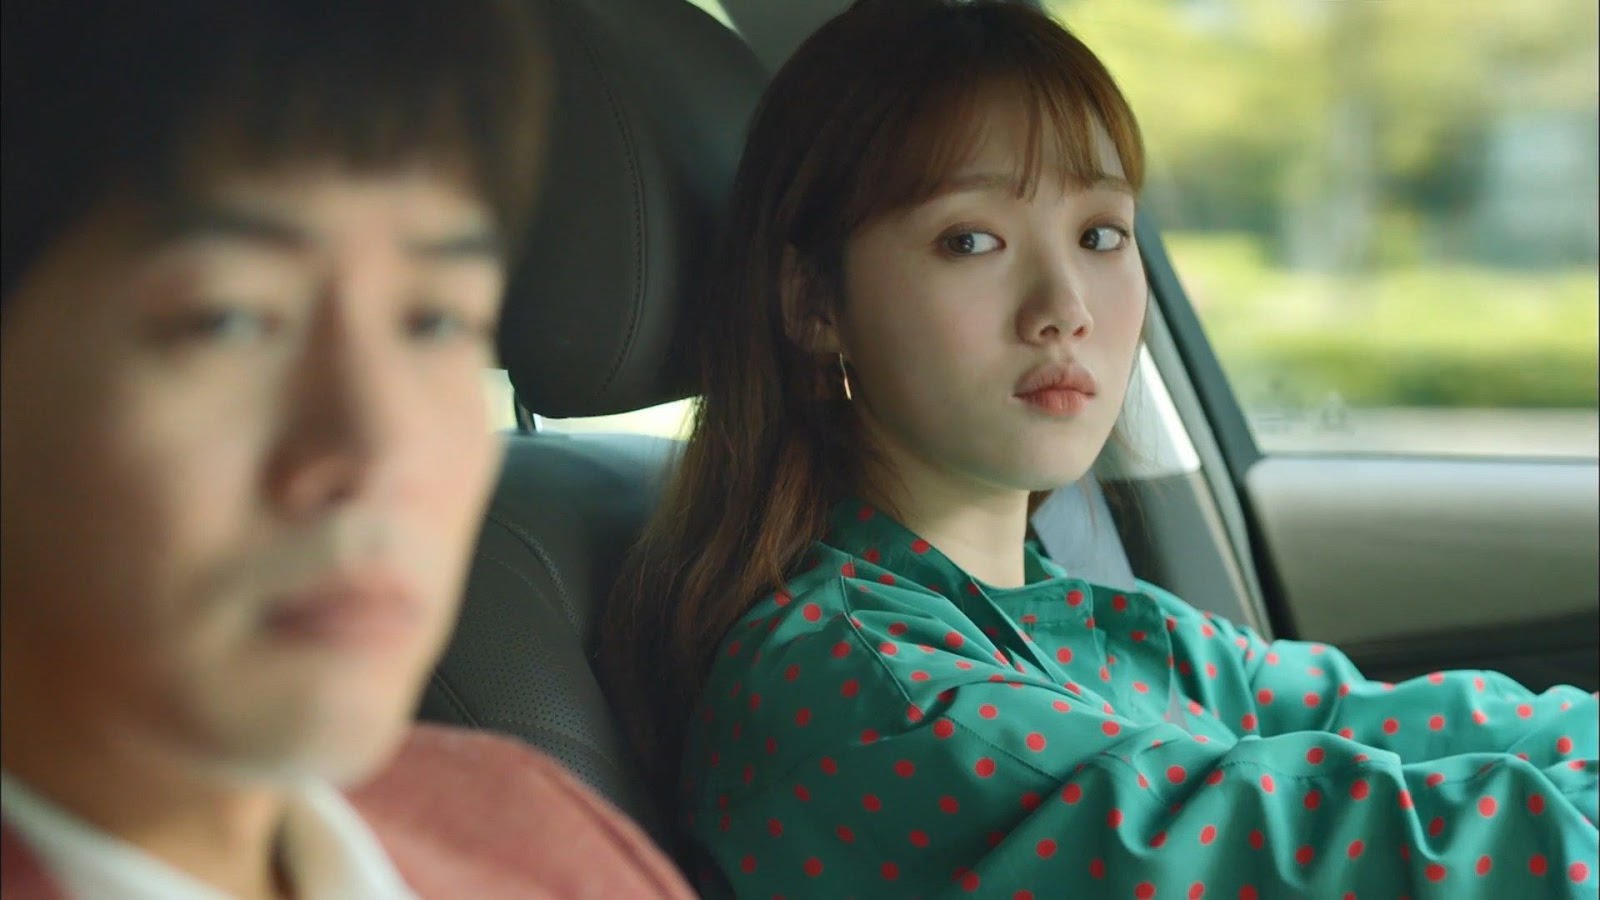 Imagen another-oh-hae-young-2582-episode-11-season-1.jpg